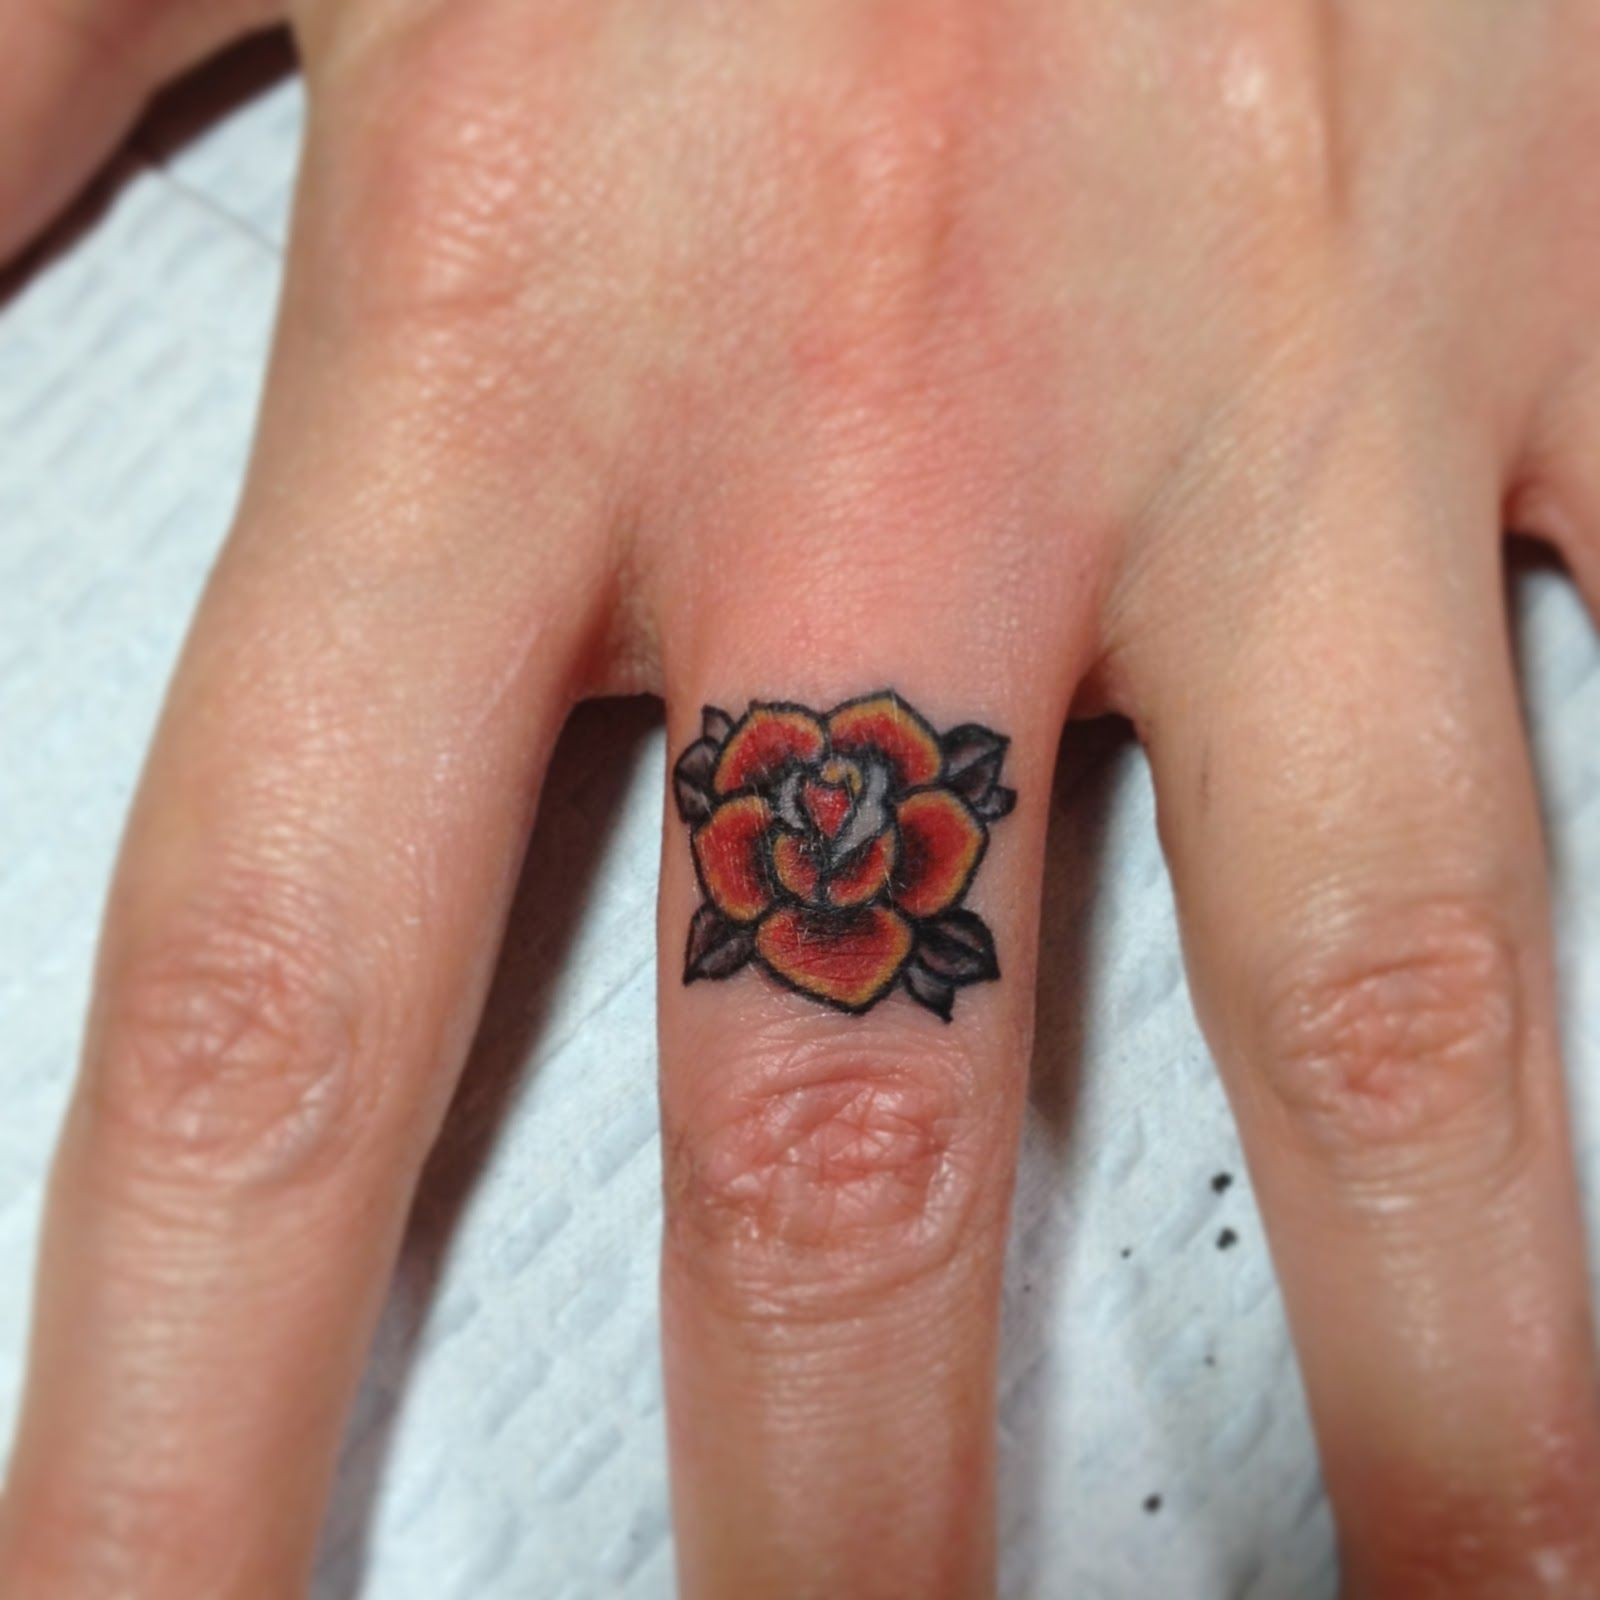 Tiny Rose Tattoo Cute Design Idea For Men And Women Too Tat